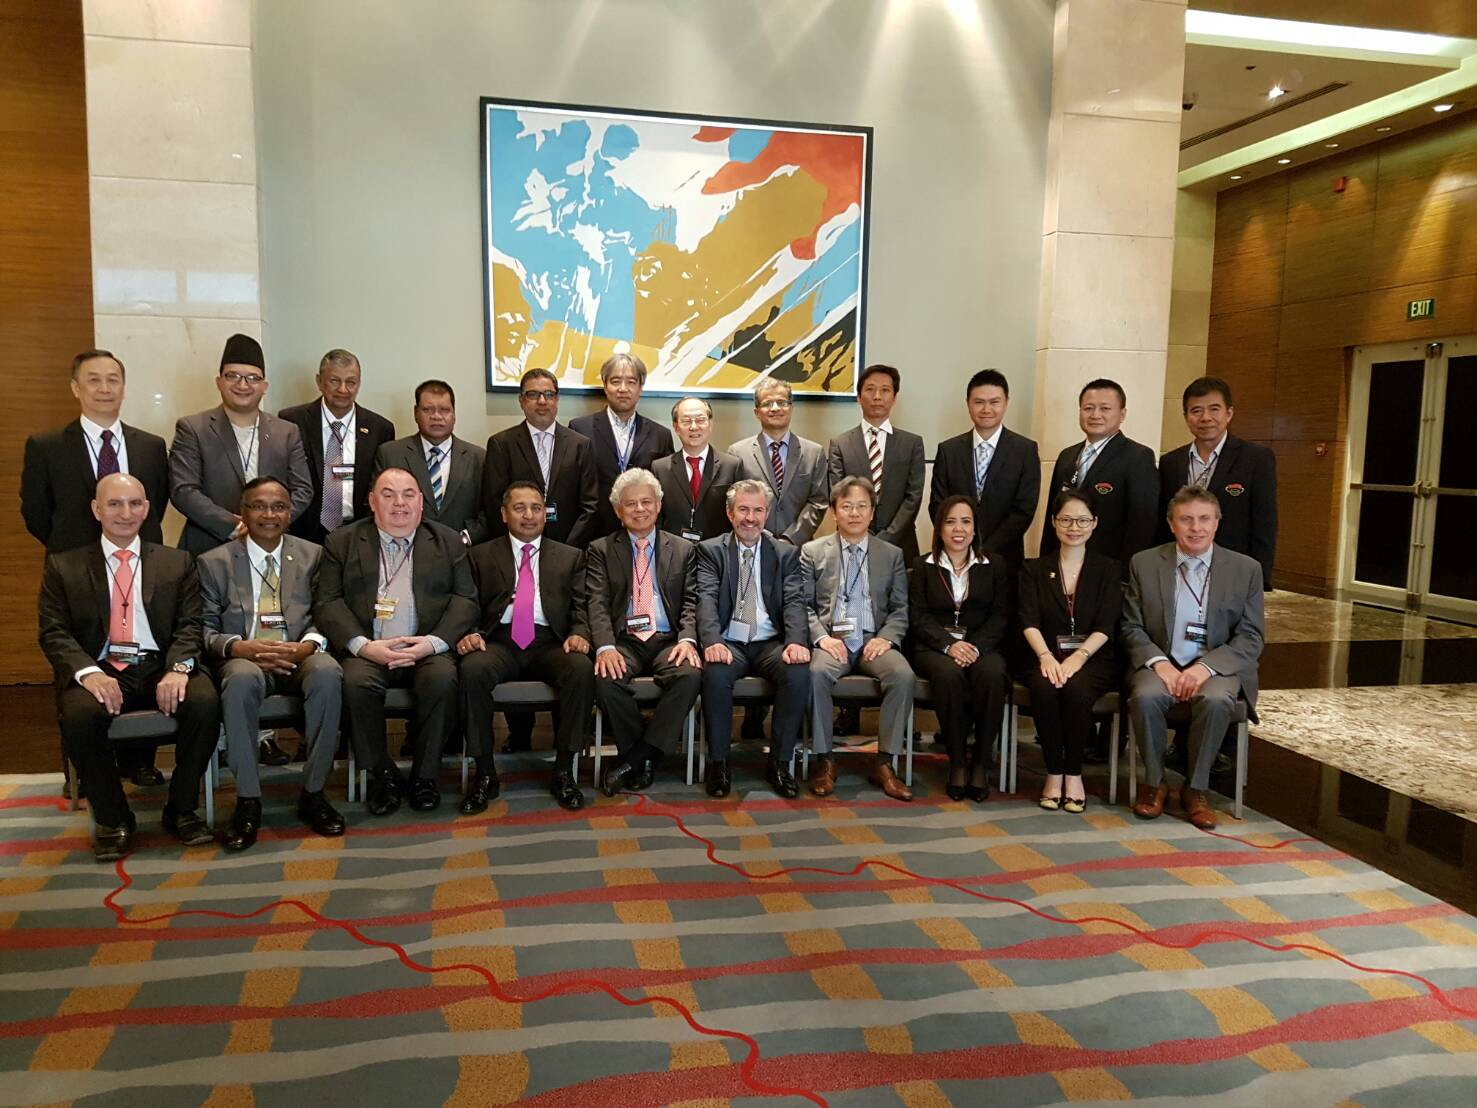 TAFA by TAFA Chairman and TAFA Manager participated the FAPAA 43rd Executive Council & Annual General Meeting at Manila, Philippines from 11 to 12 July 2016.